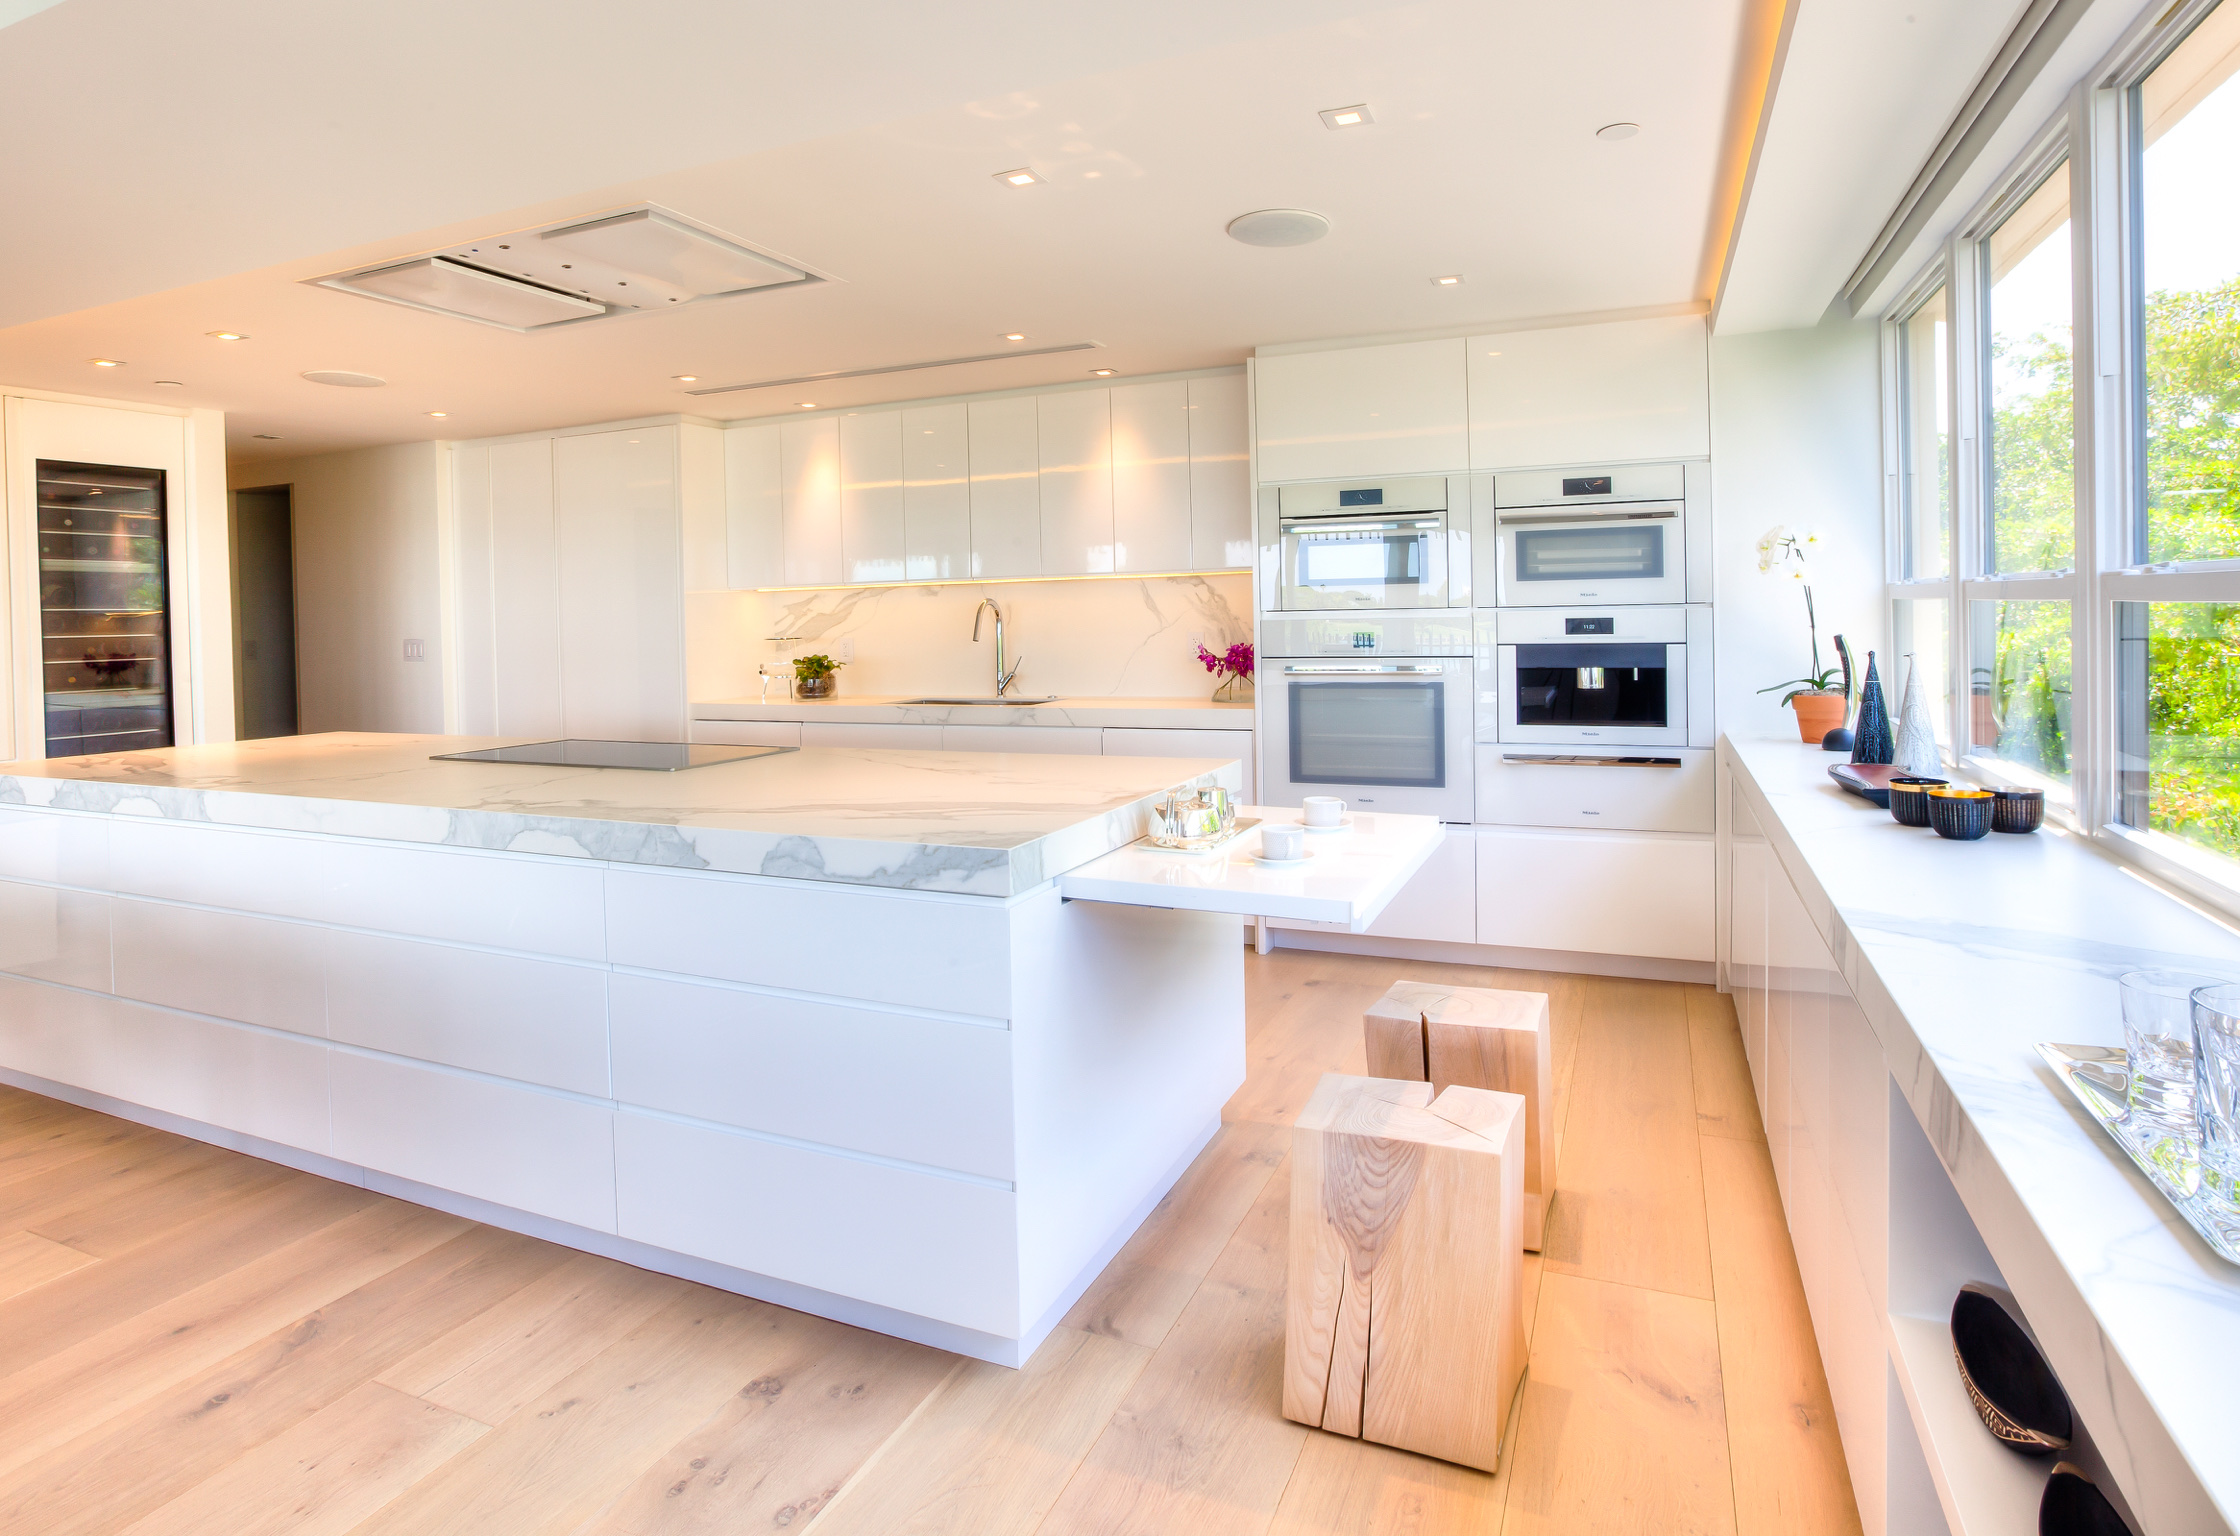 Kitchen island, oven and wine cooler